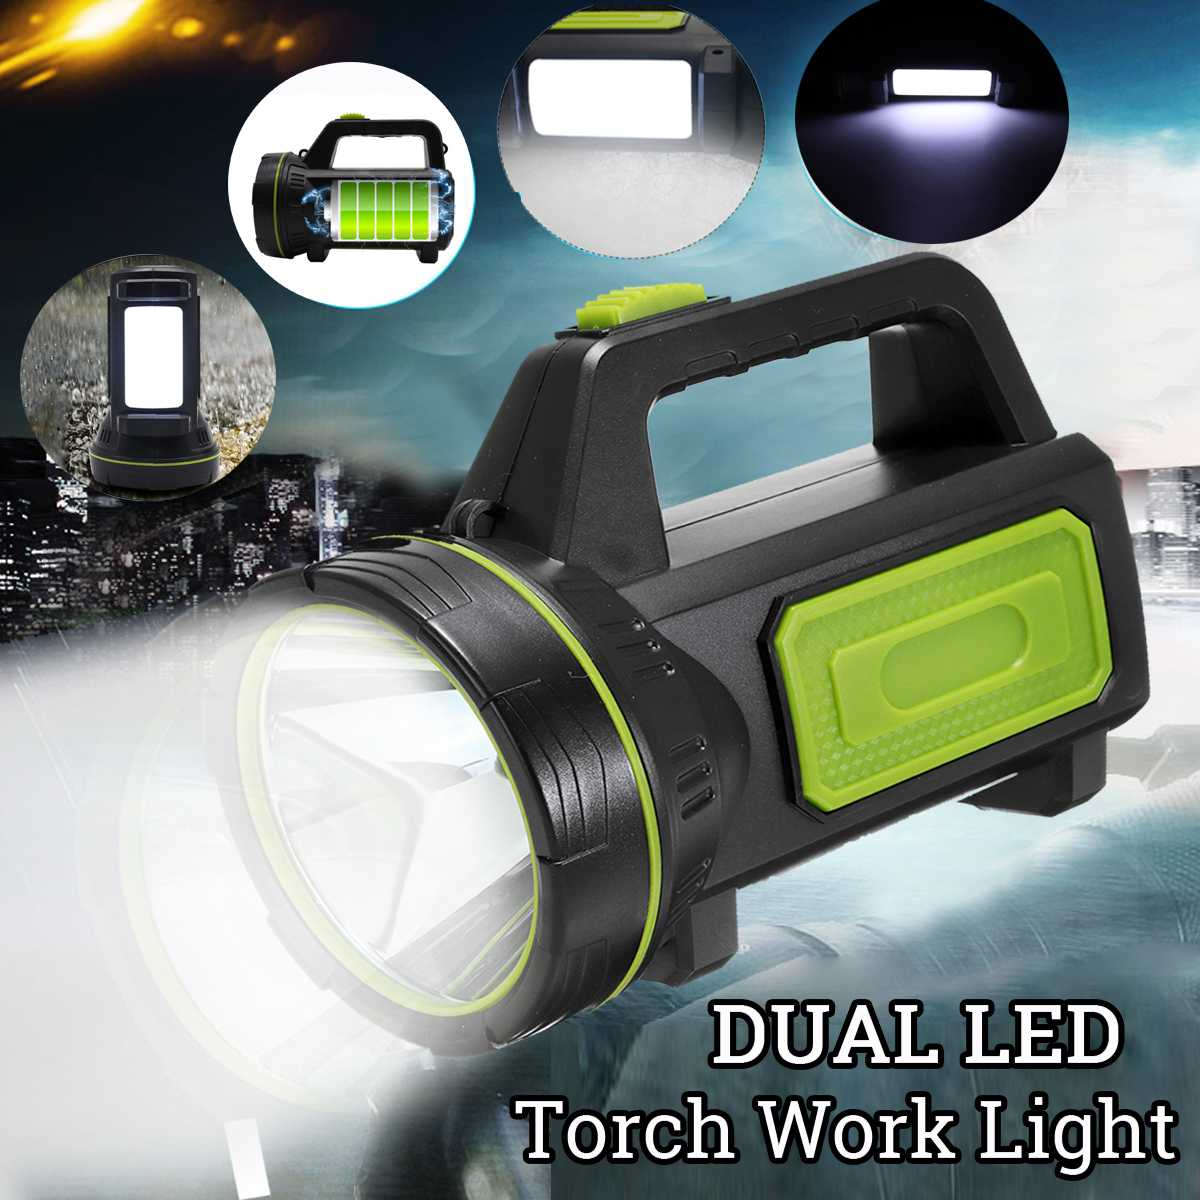 Dual LED High Power USB Rechargeable Torch Candle Work Light Camping Lamp